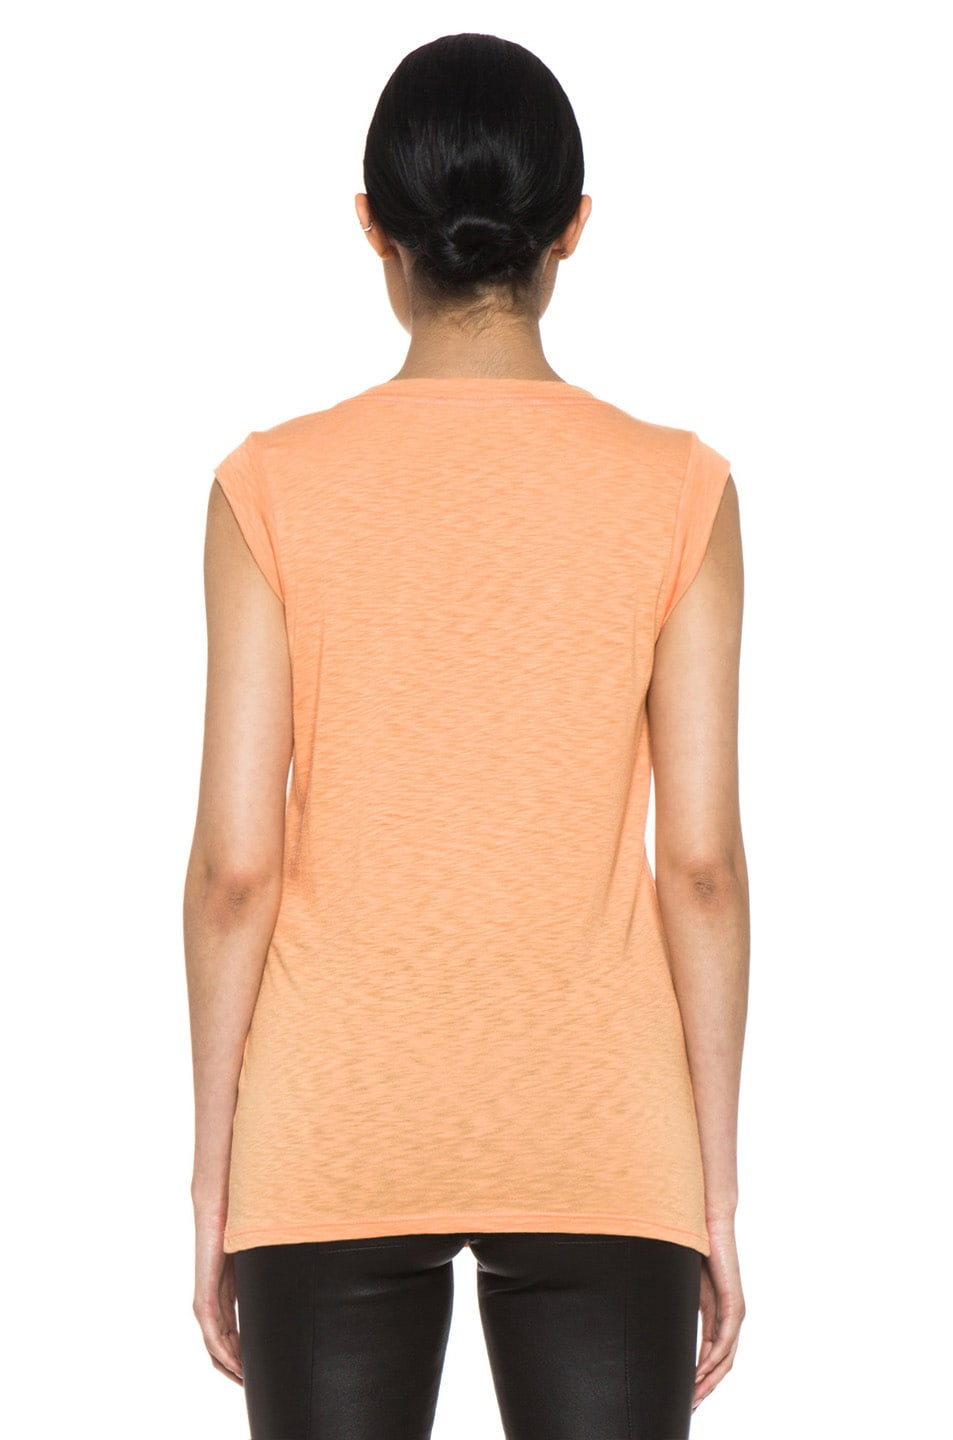 Image 4 of Kelly Wearstler Metallic Cyclone Top in Tangerine & Gunmetal Foil